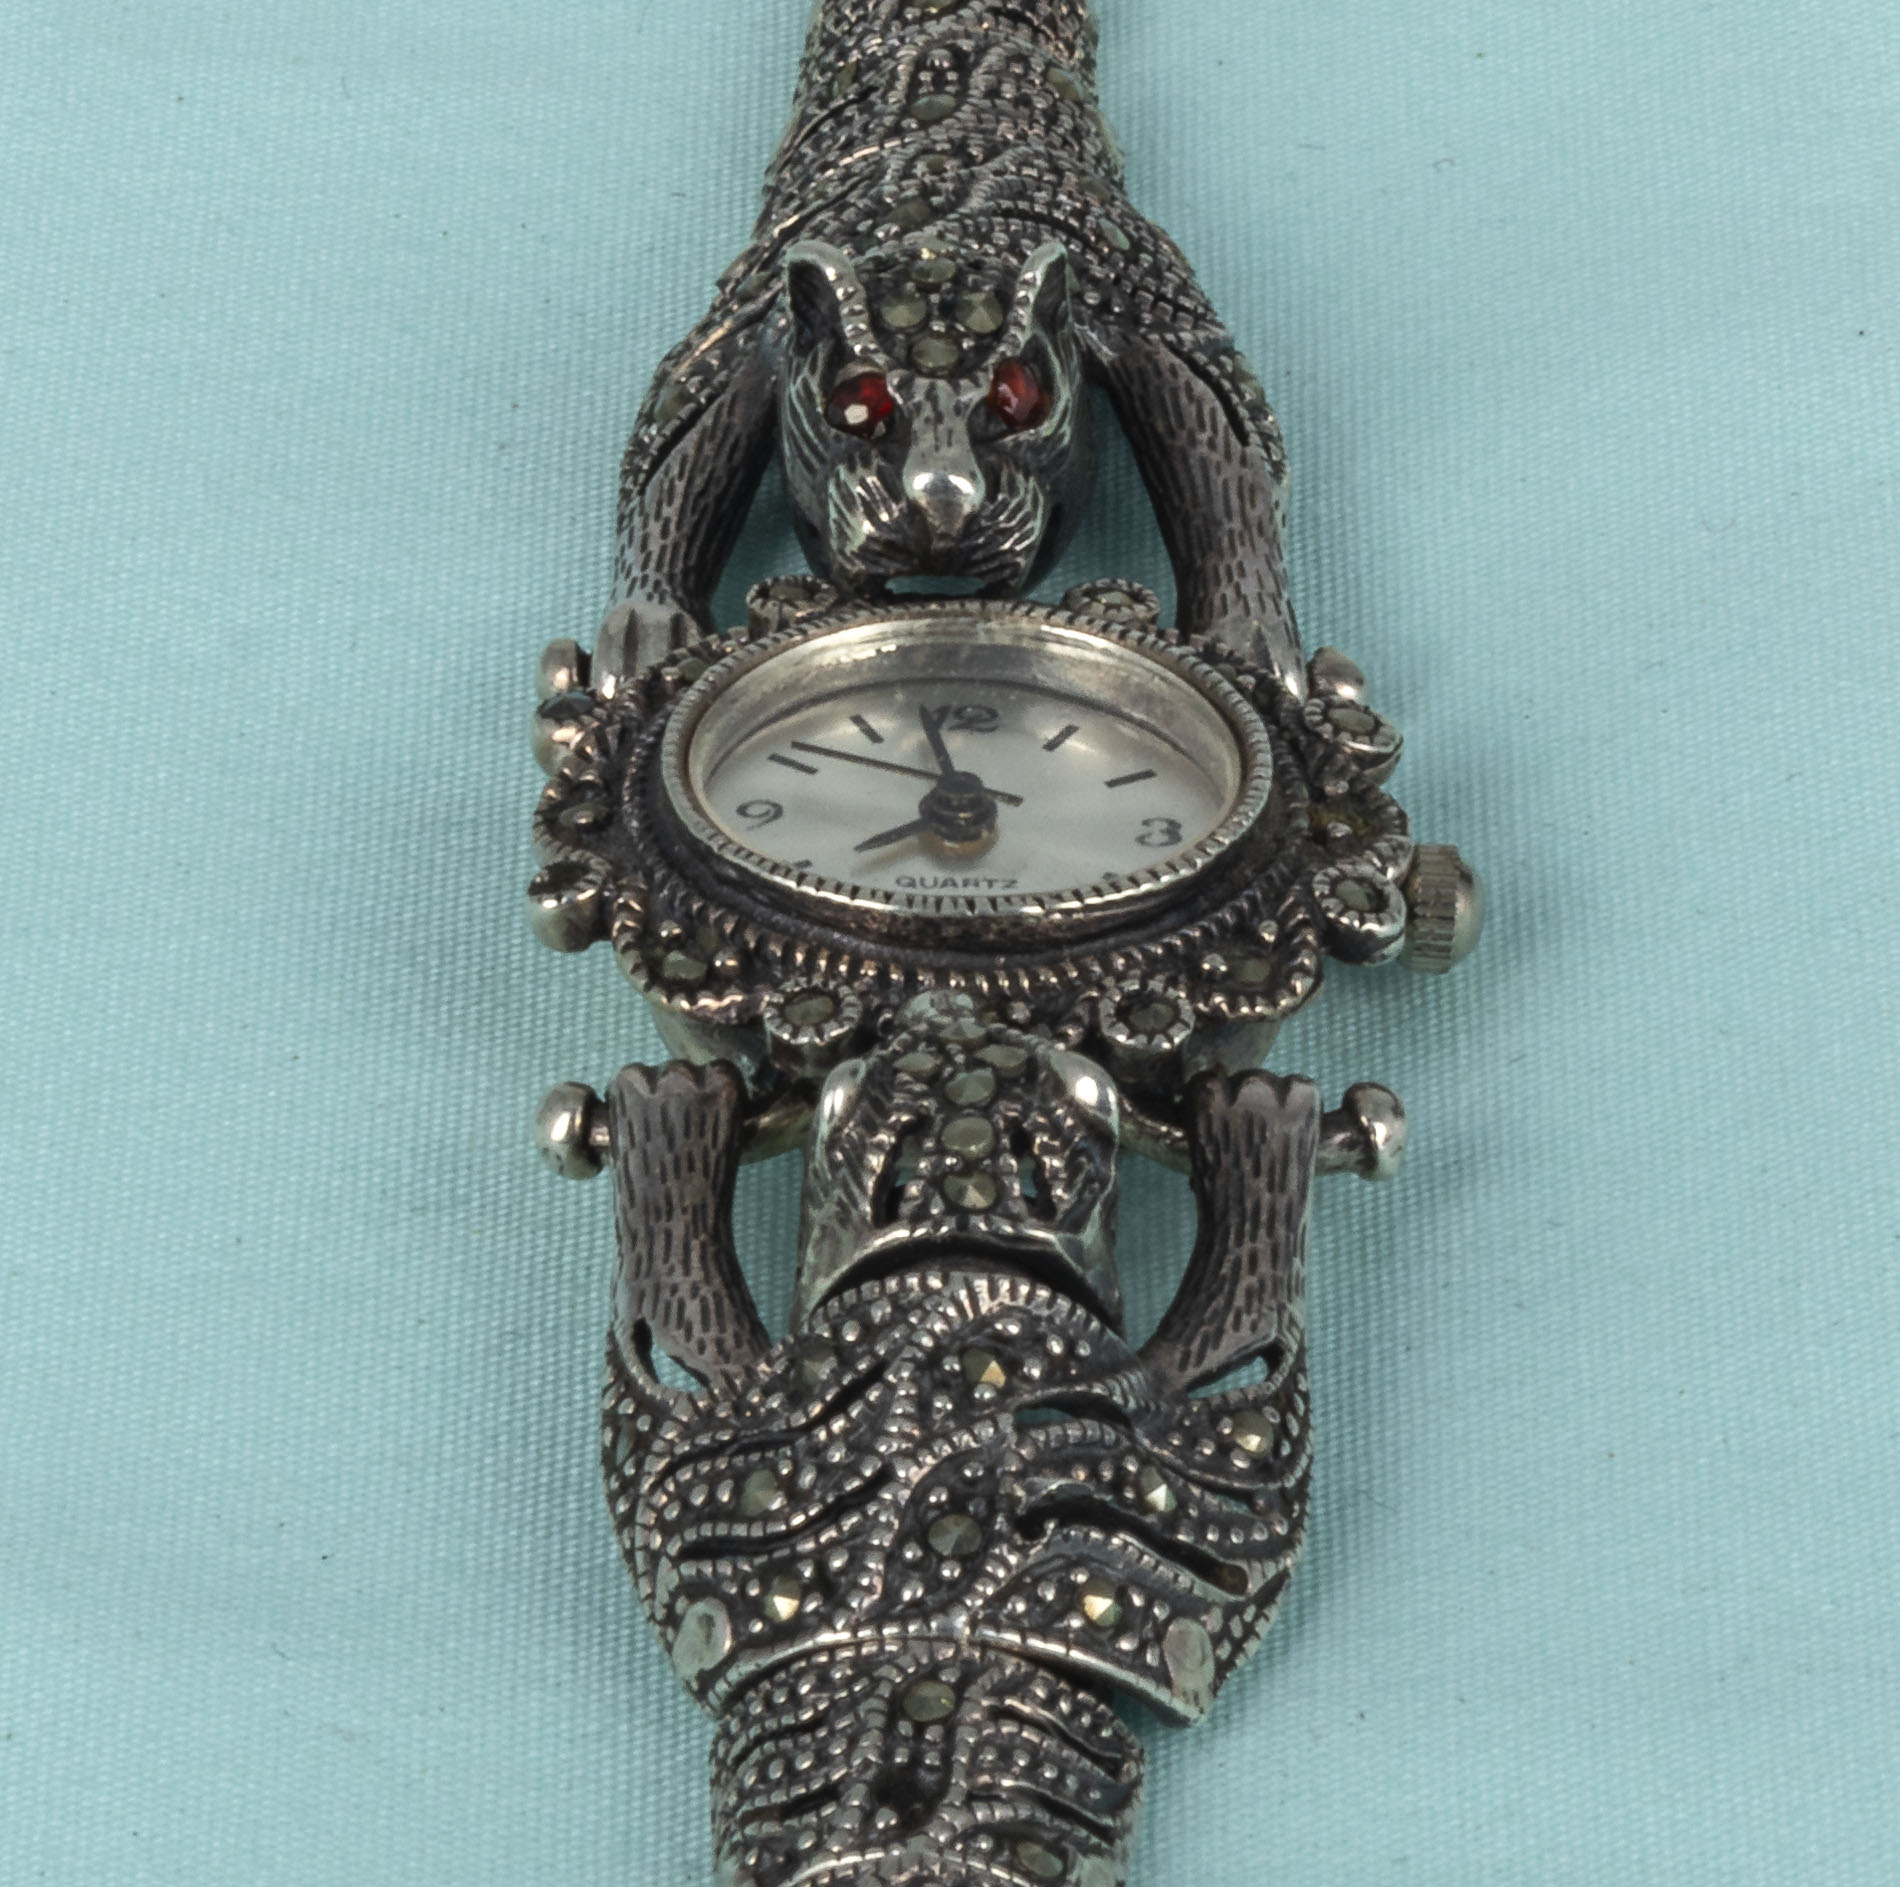 A lady's French marcasite and silver dress wristwatch with leopard shoulders - Image 3 of 4